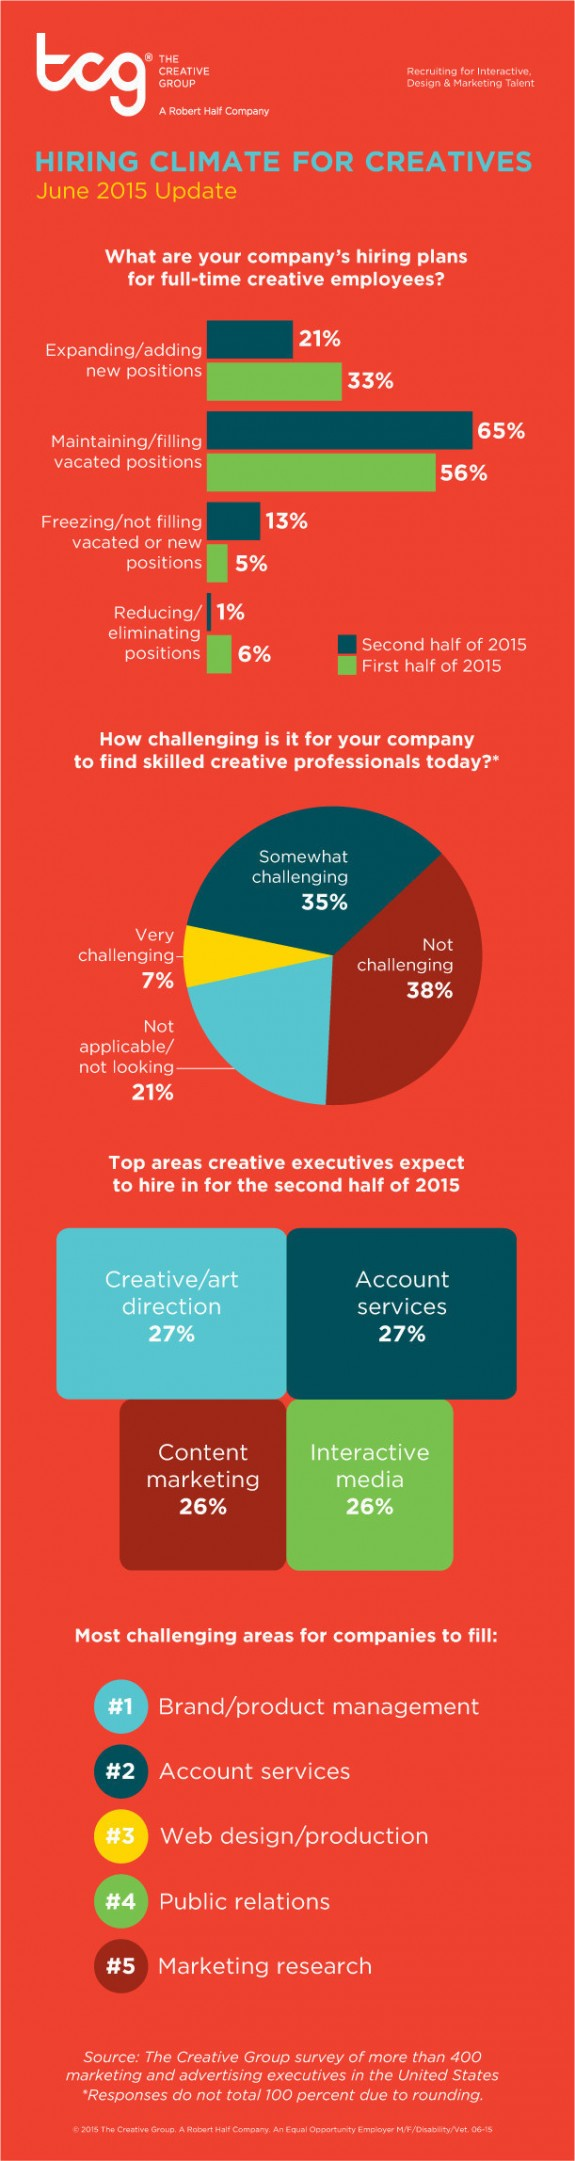 Survey: Many companies plan to add creative and marketing staff through year-end (PRNewsFoto/The Creative Group)